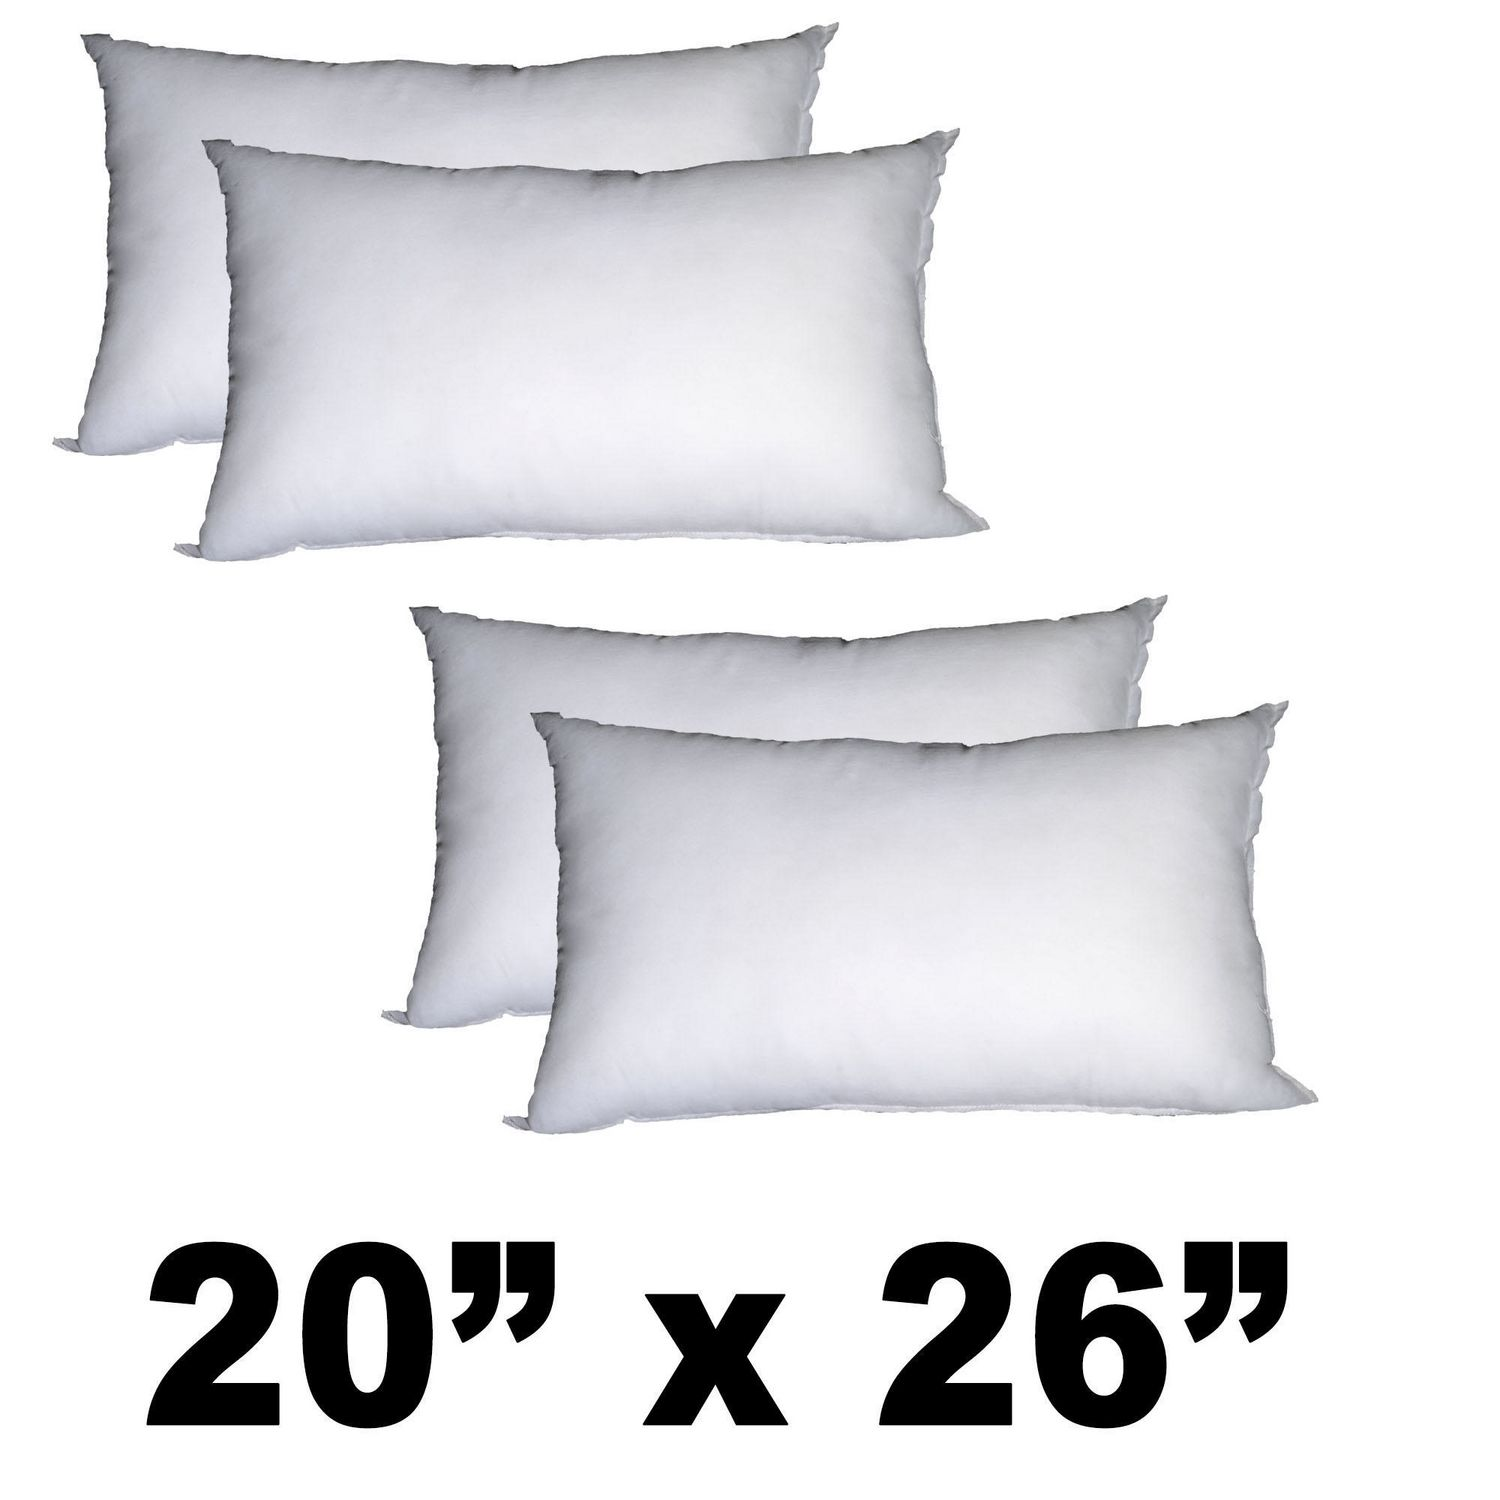 Pile of Pillows Form Insert Cushion-18X18-Inch-4 Pack